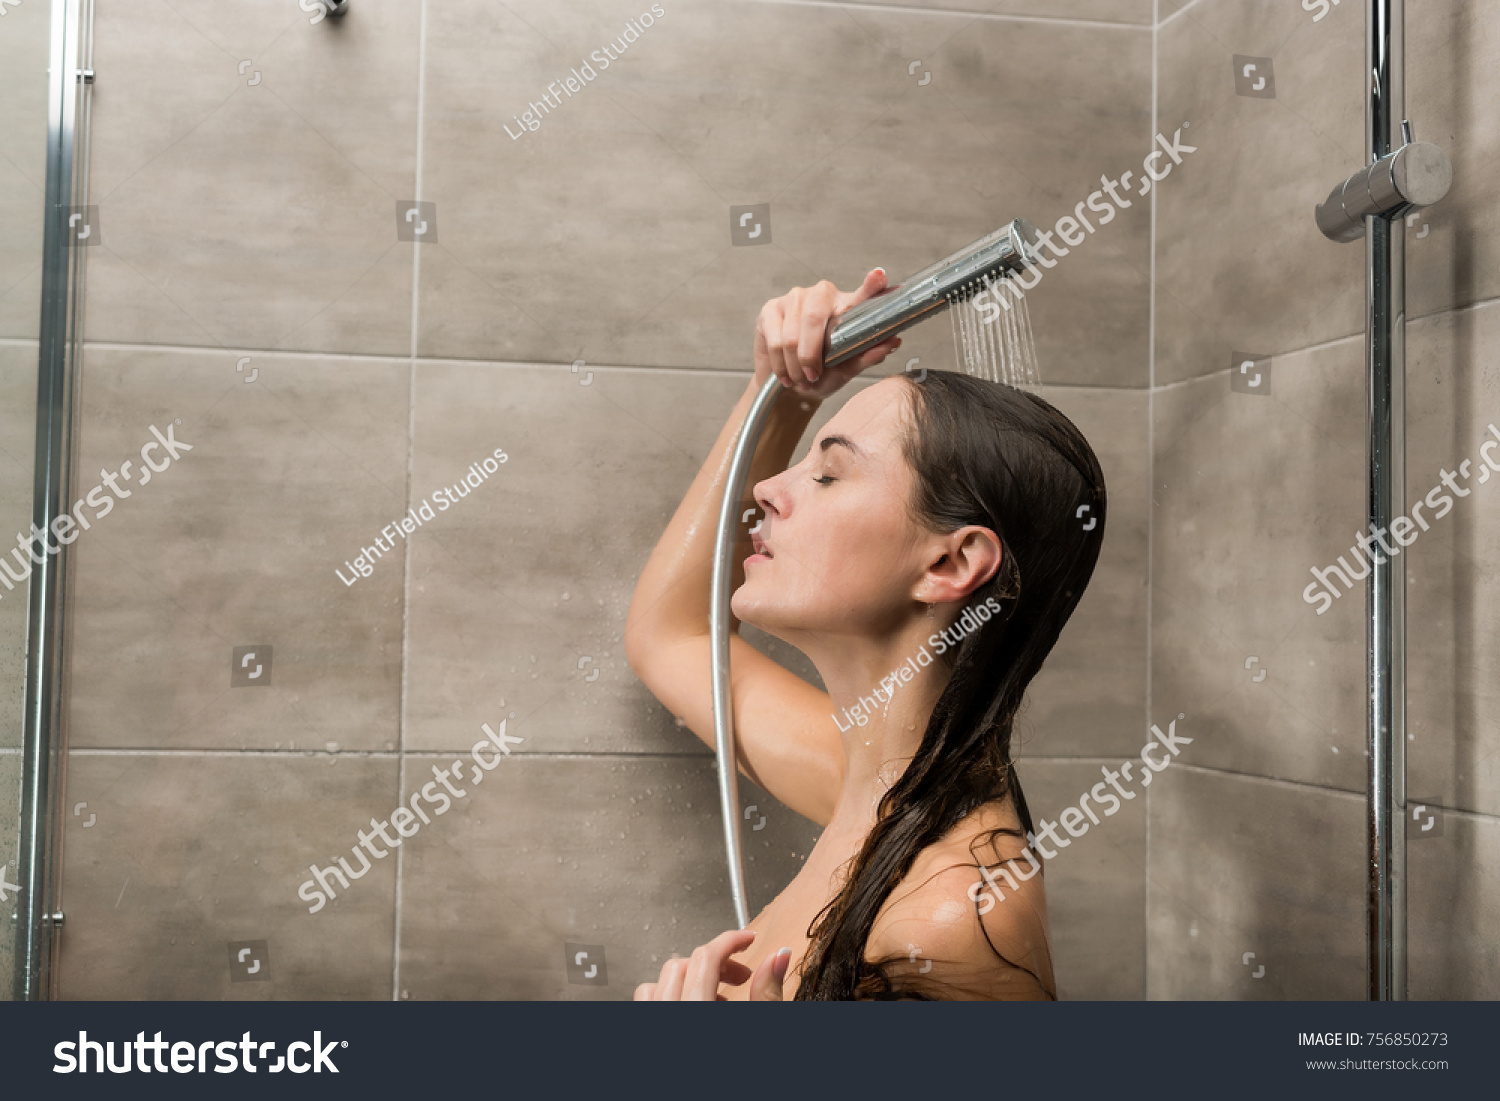 Really. Girl naked playing with the shower head can not